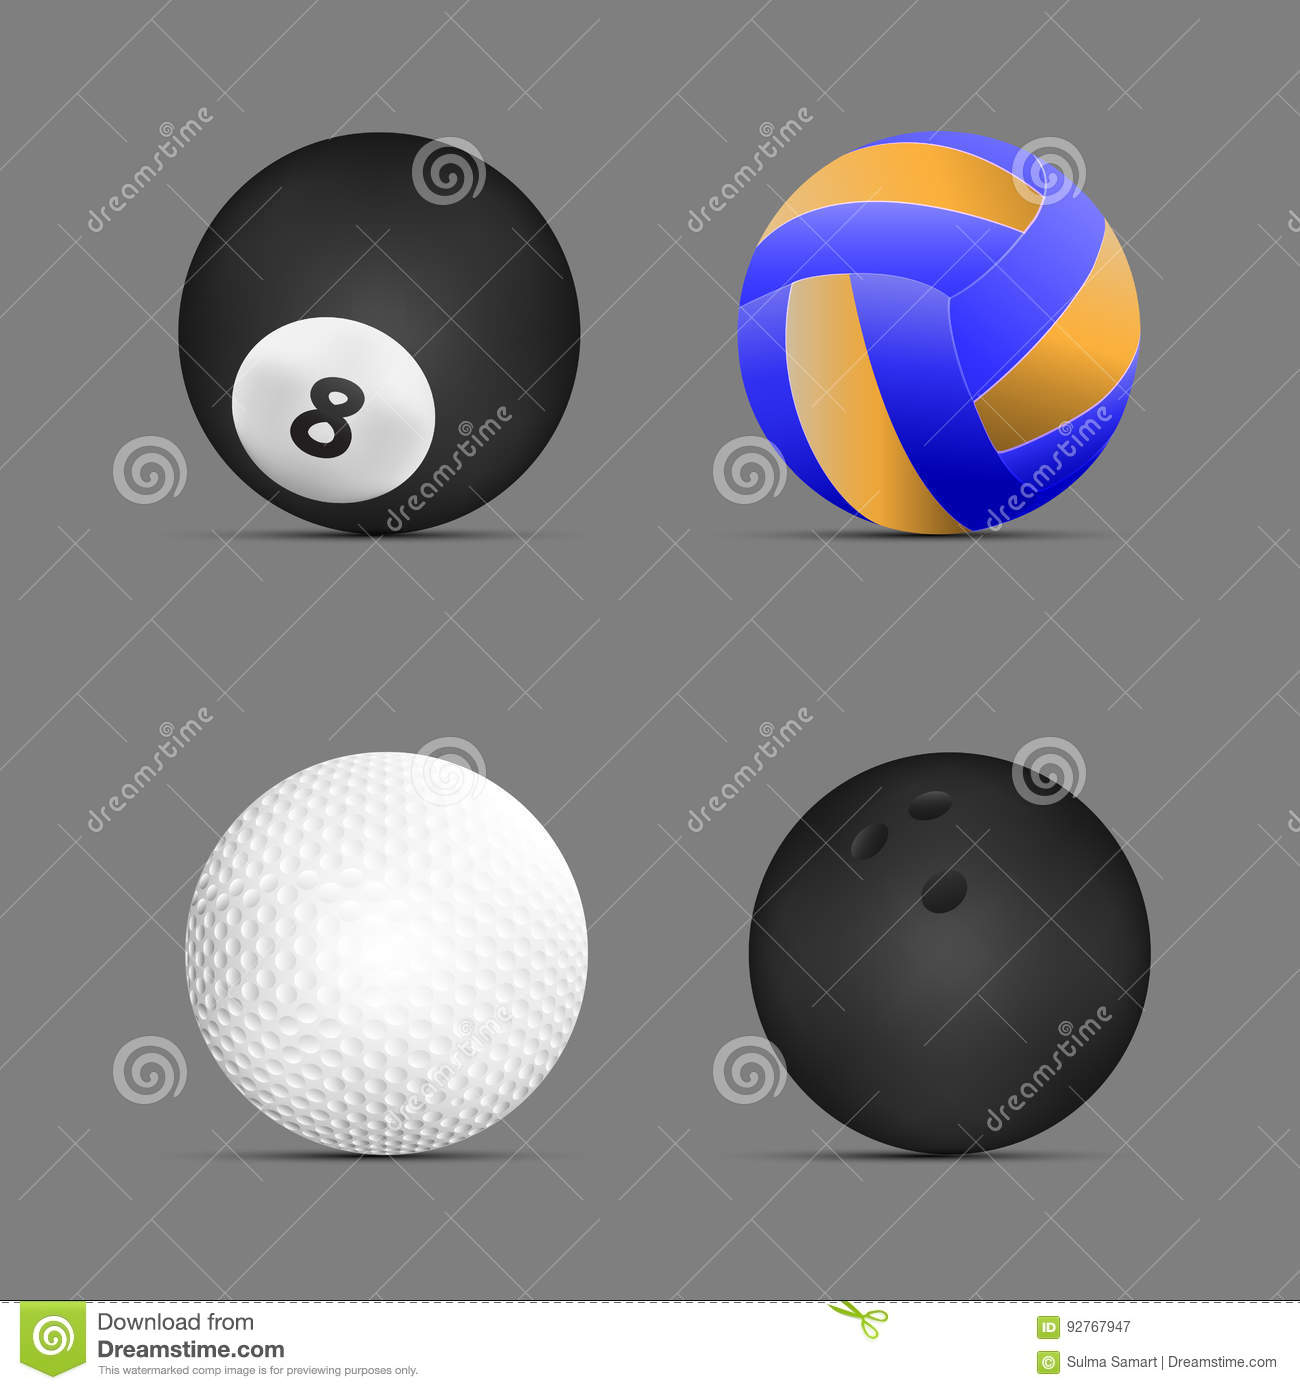 Volleyball ball billiards golf bowling